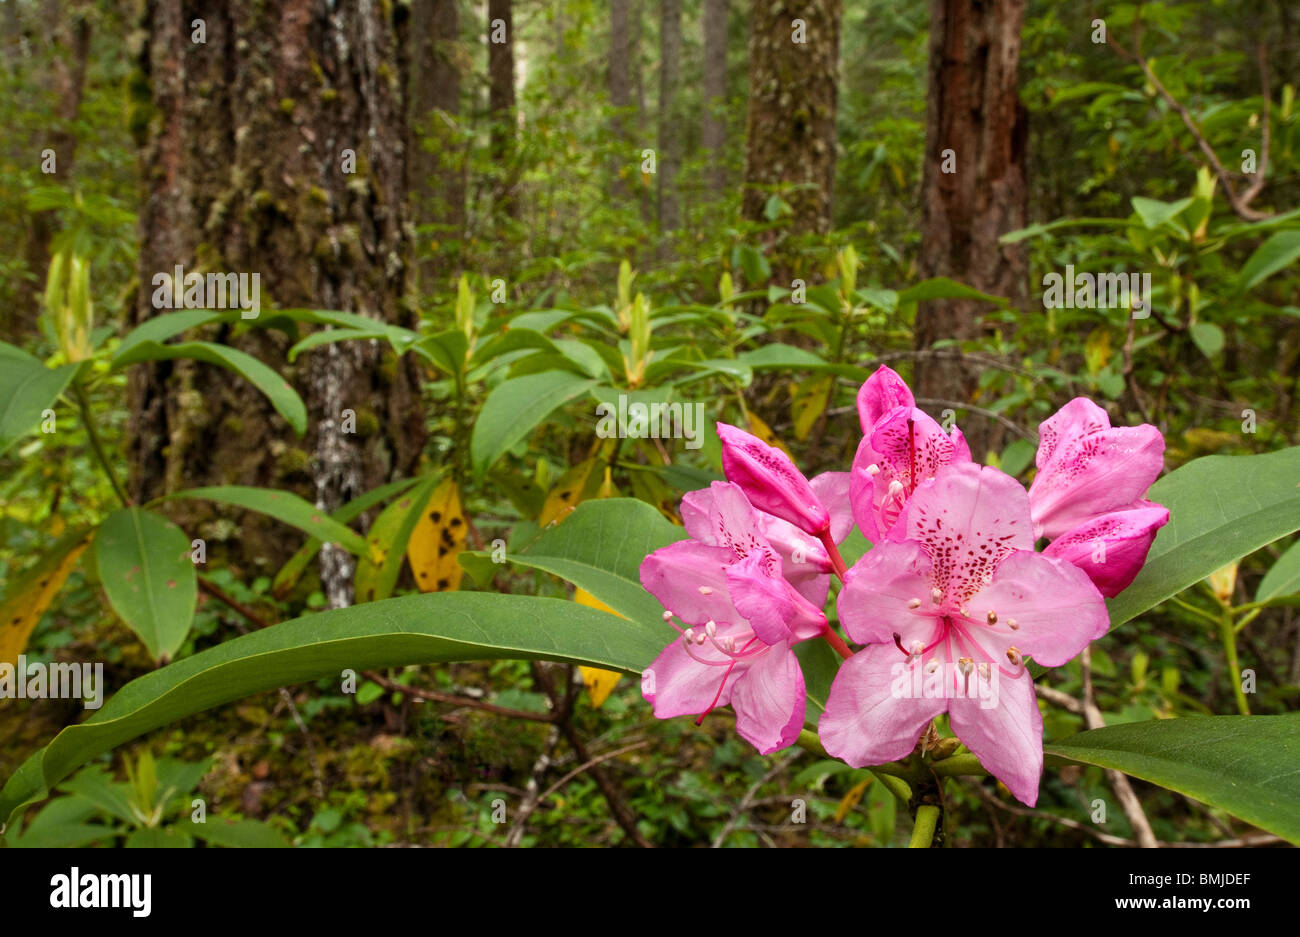 Rhododendron blooming in forest; McKenzie River Trail, Willamette National Forest, Oregon. - Stock Image